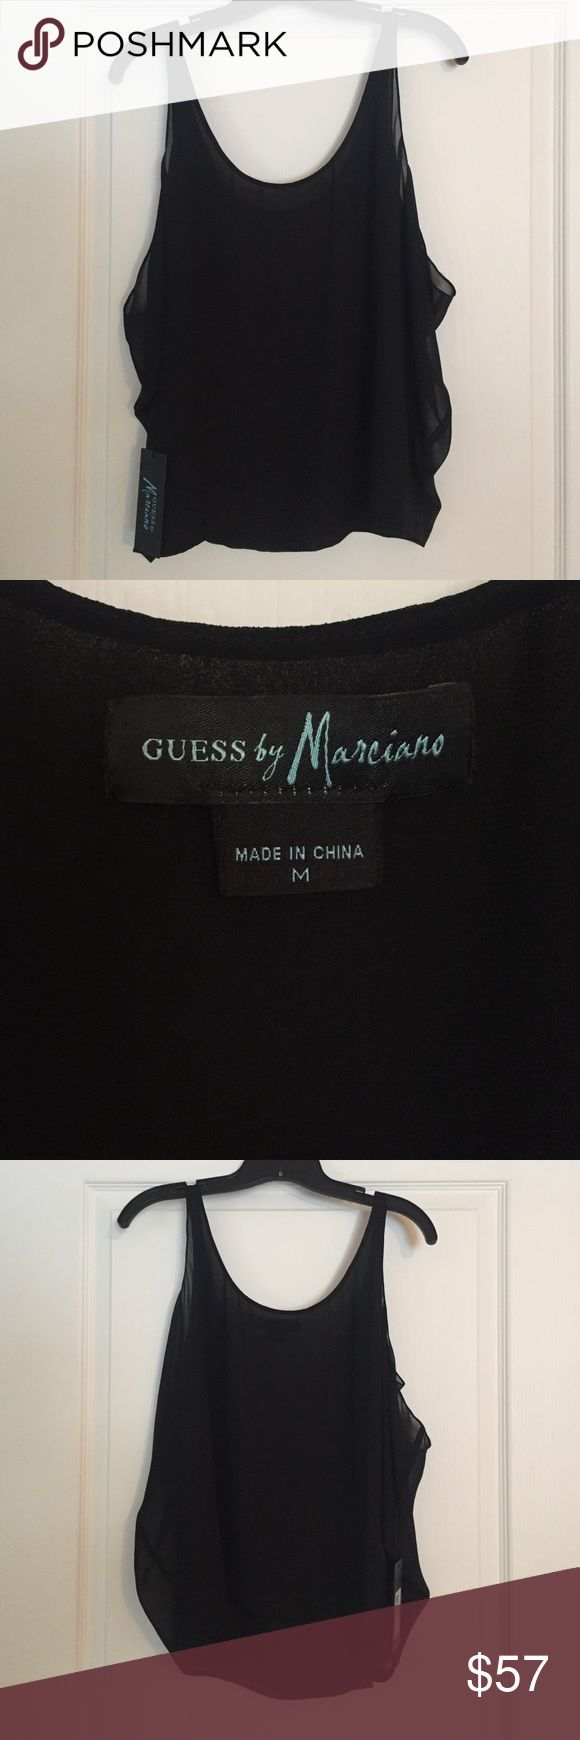 Guess Marciano black layered sleeveless blouse Guess Marciano black layered sleeveless blouse Guess by Marciano Tops Blouses